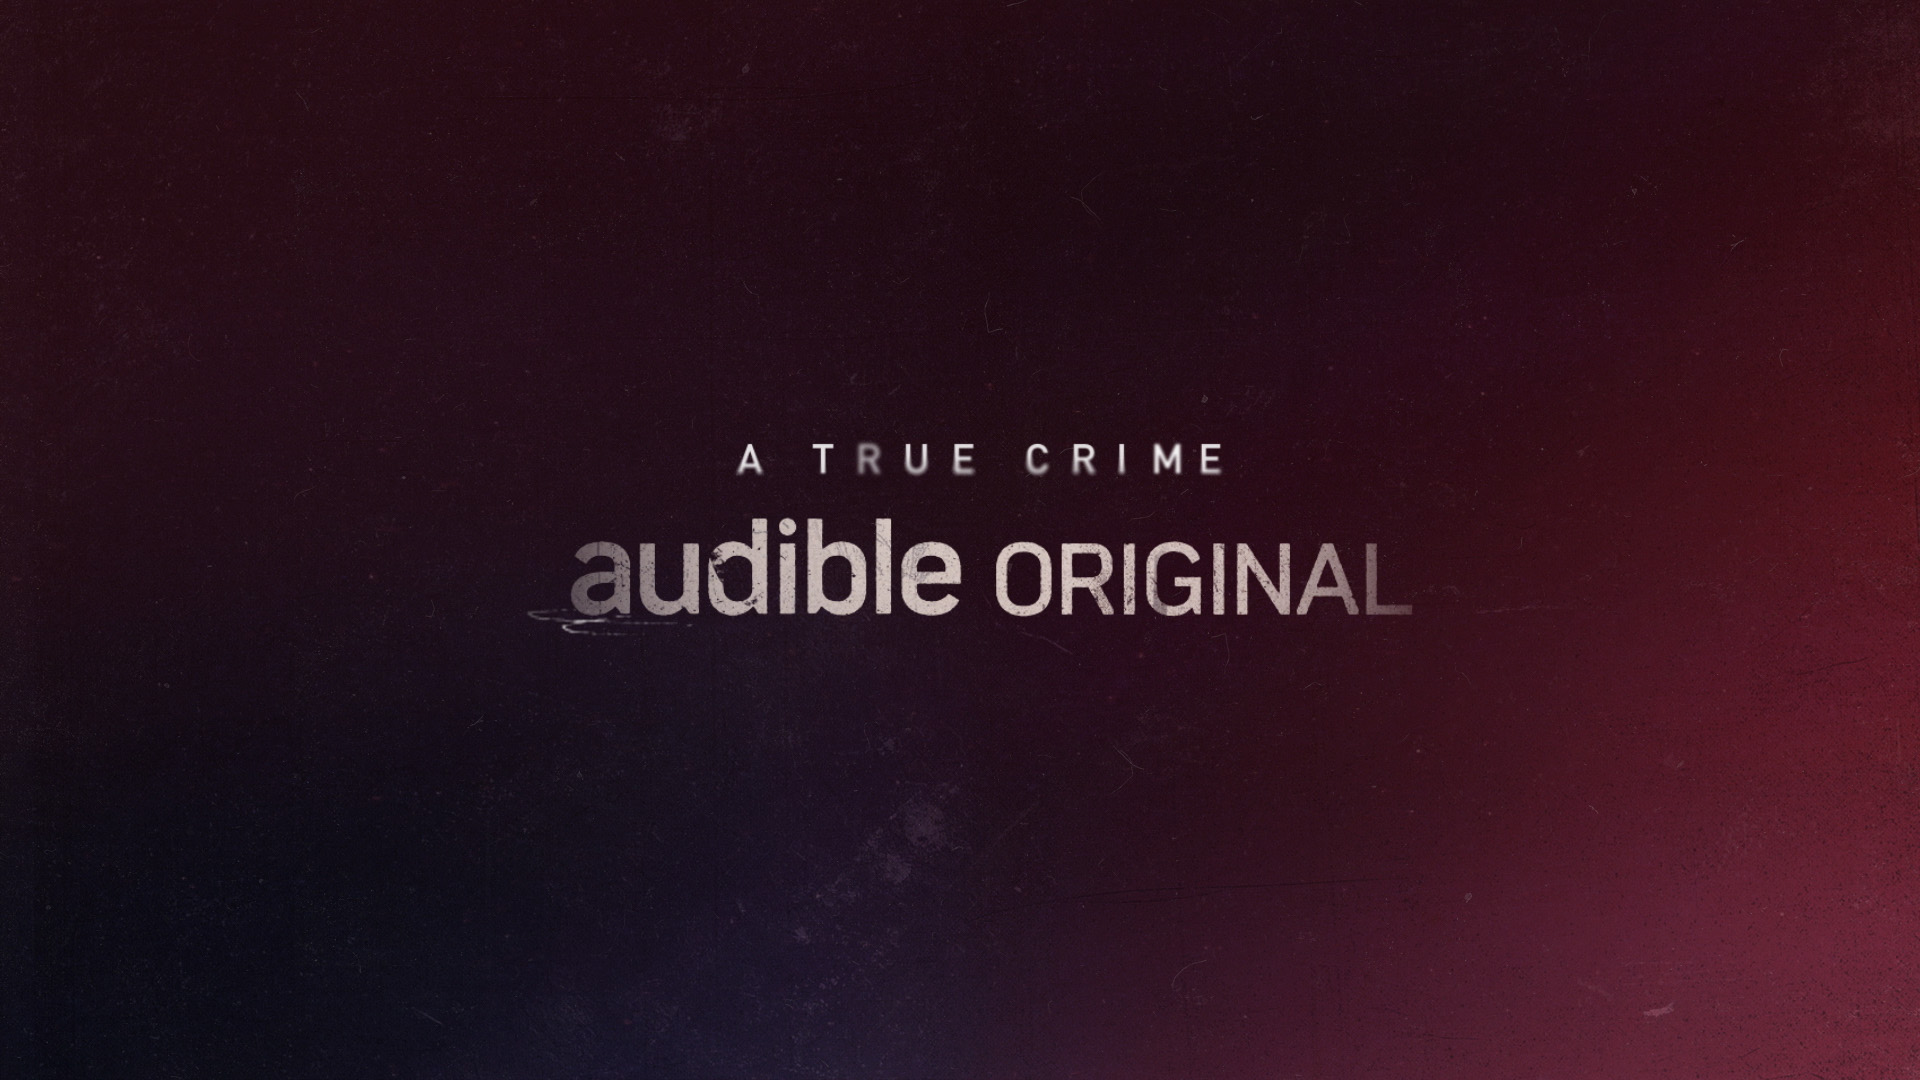 audible_cmg_01